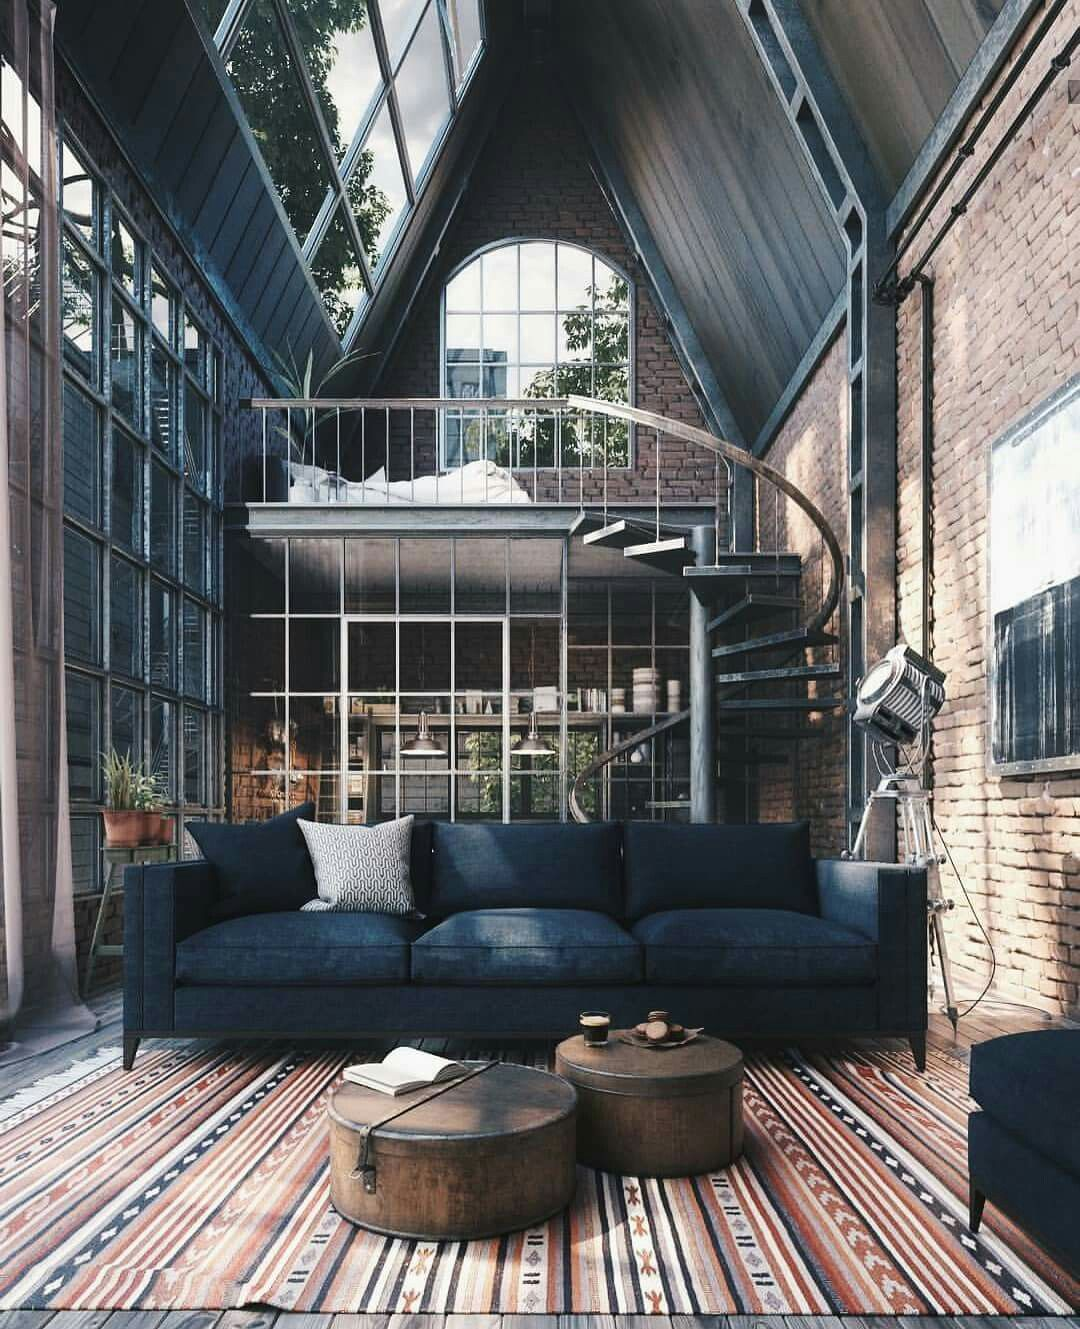 Amelies Wohnzimmer Pin By Amelie La Mort On Future Home Pinterest